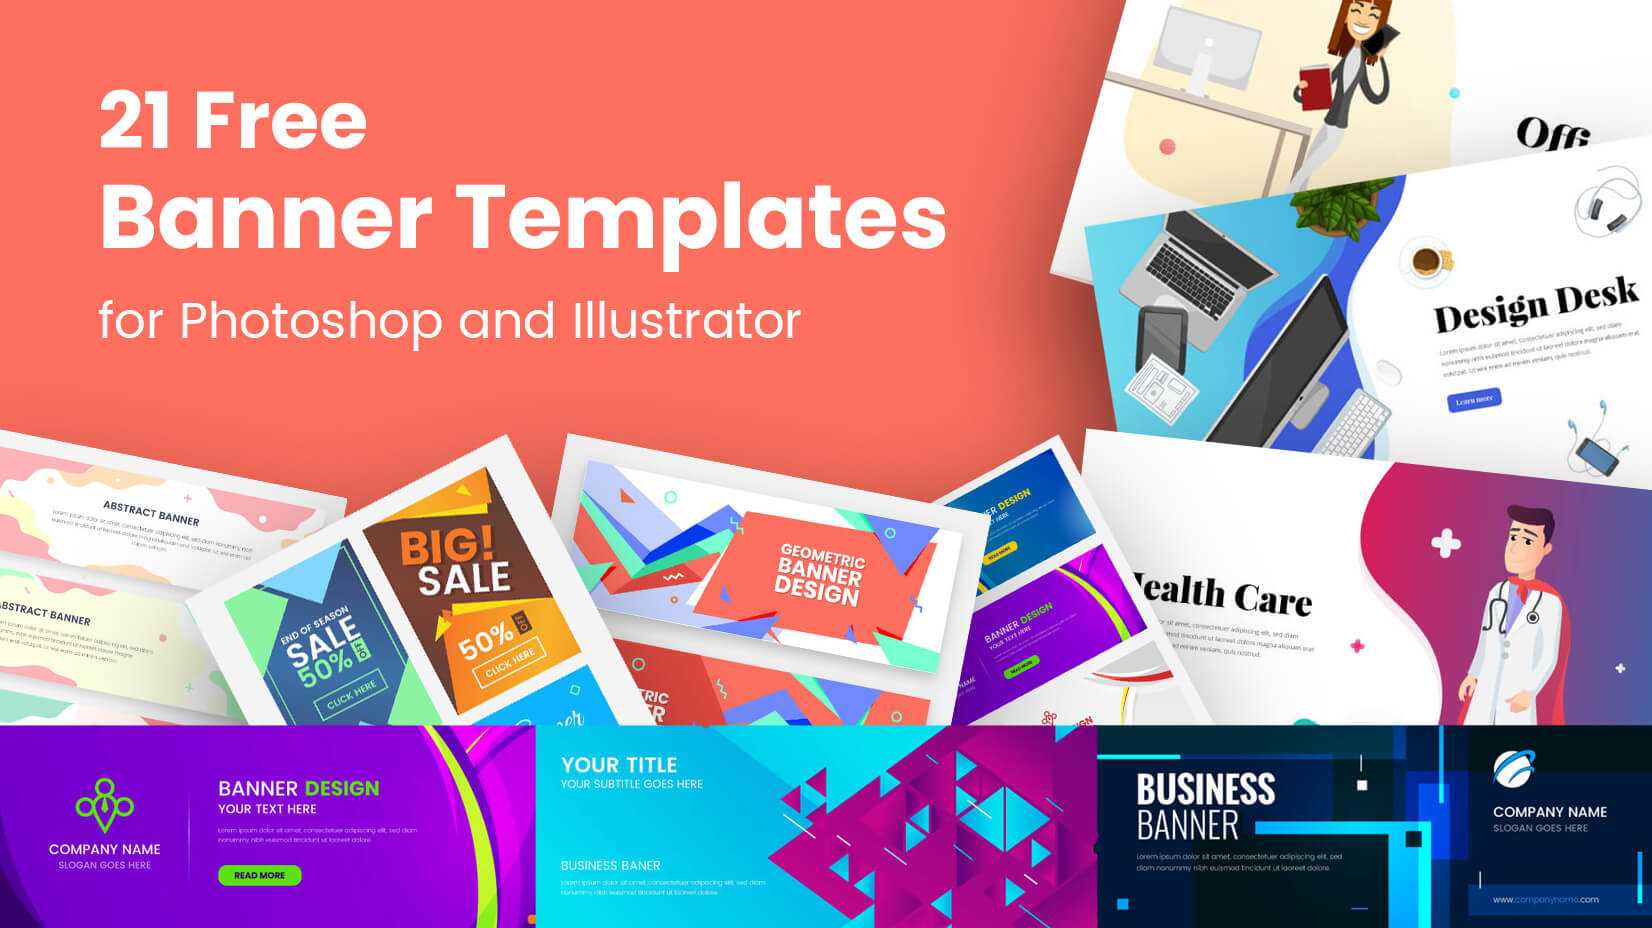 21 Free Banner Templates For Photoshop And Illustrator With Free Website Banner Templates Download